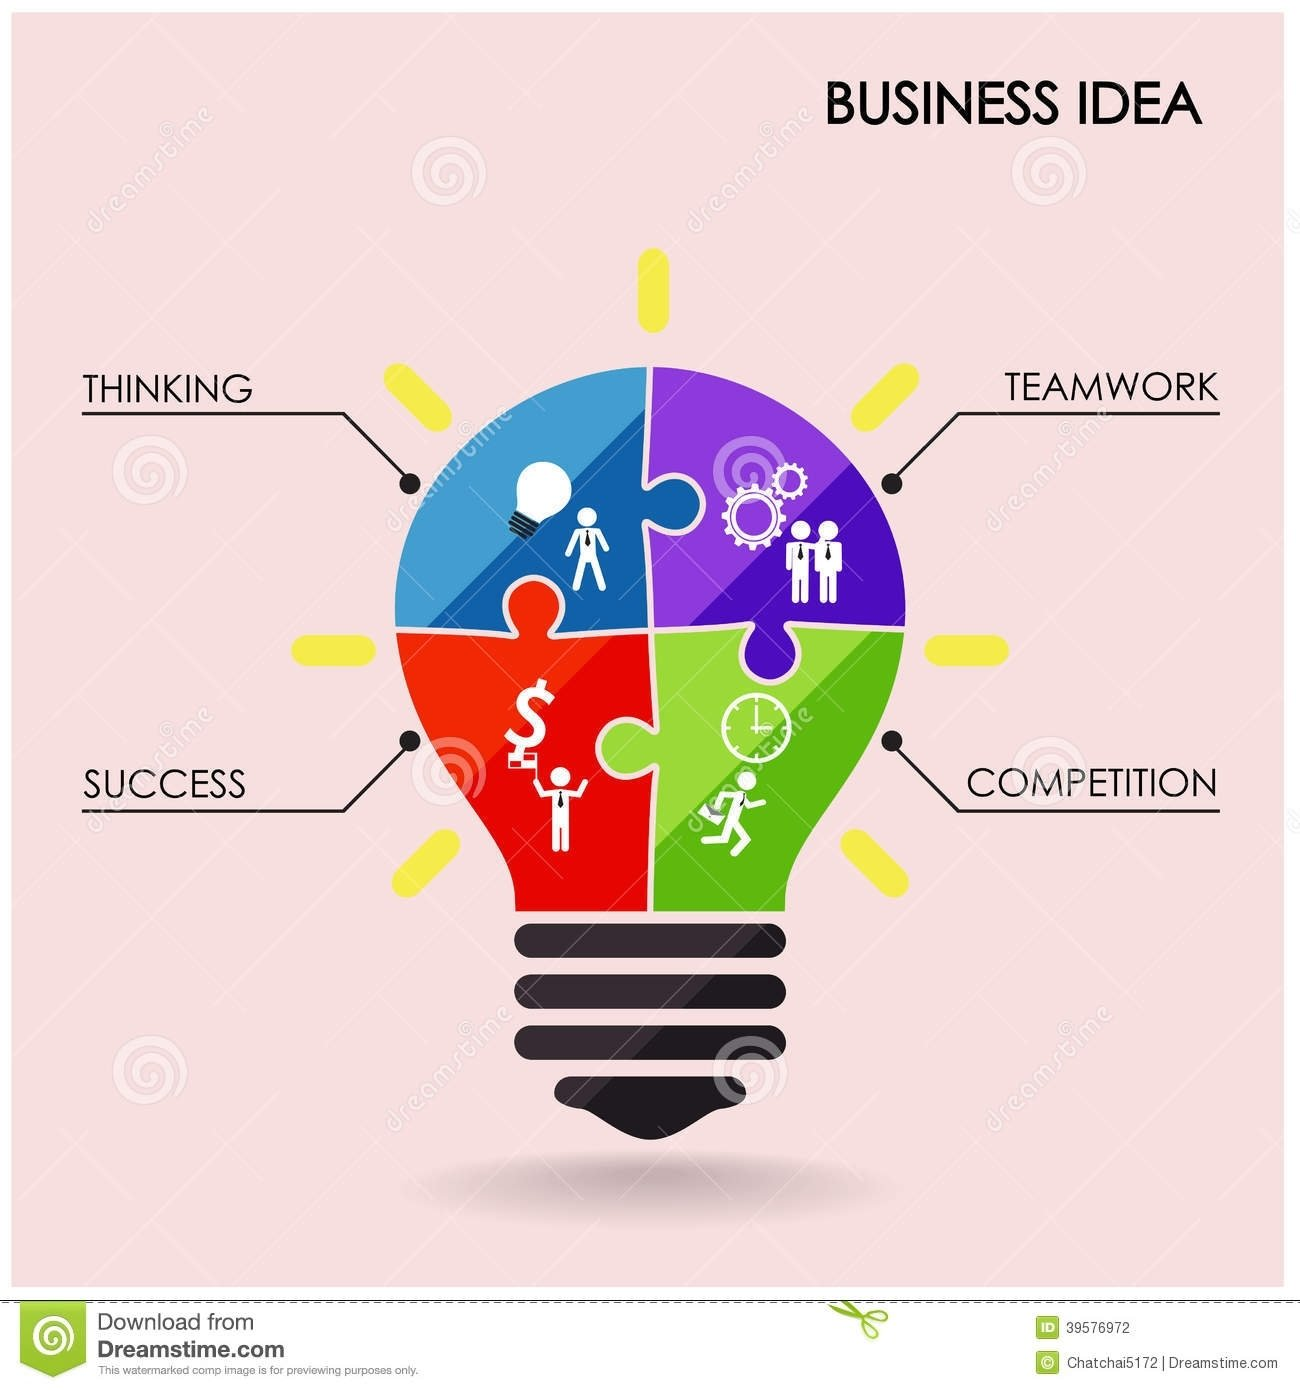 10 Unique A Great Business Idea Is creative light bulb and business idea stock vector illustration of 2020